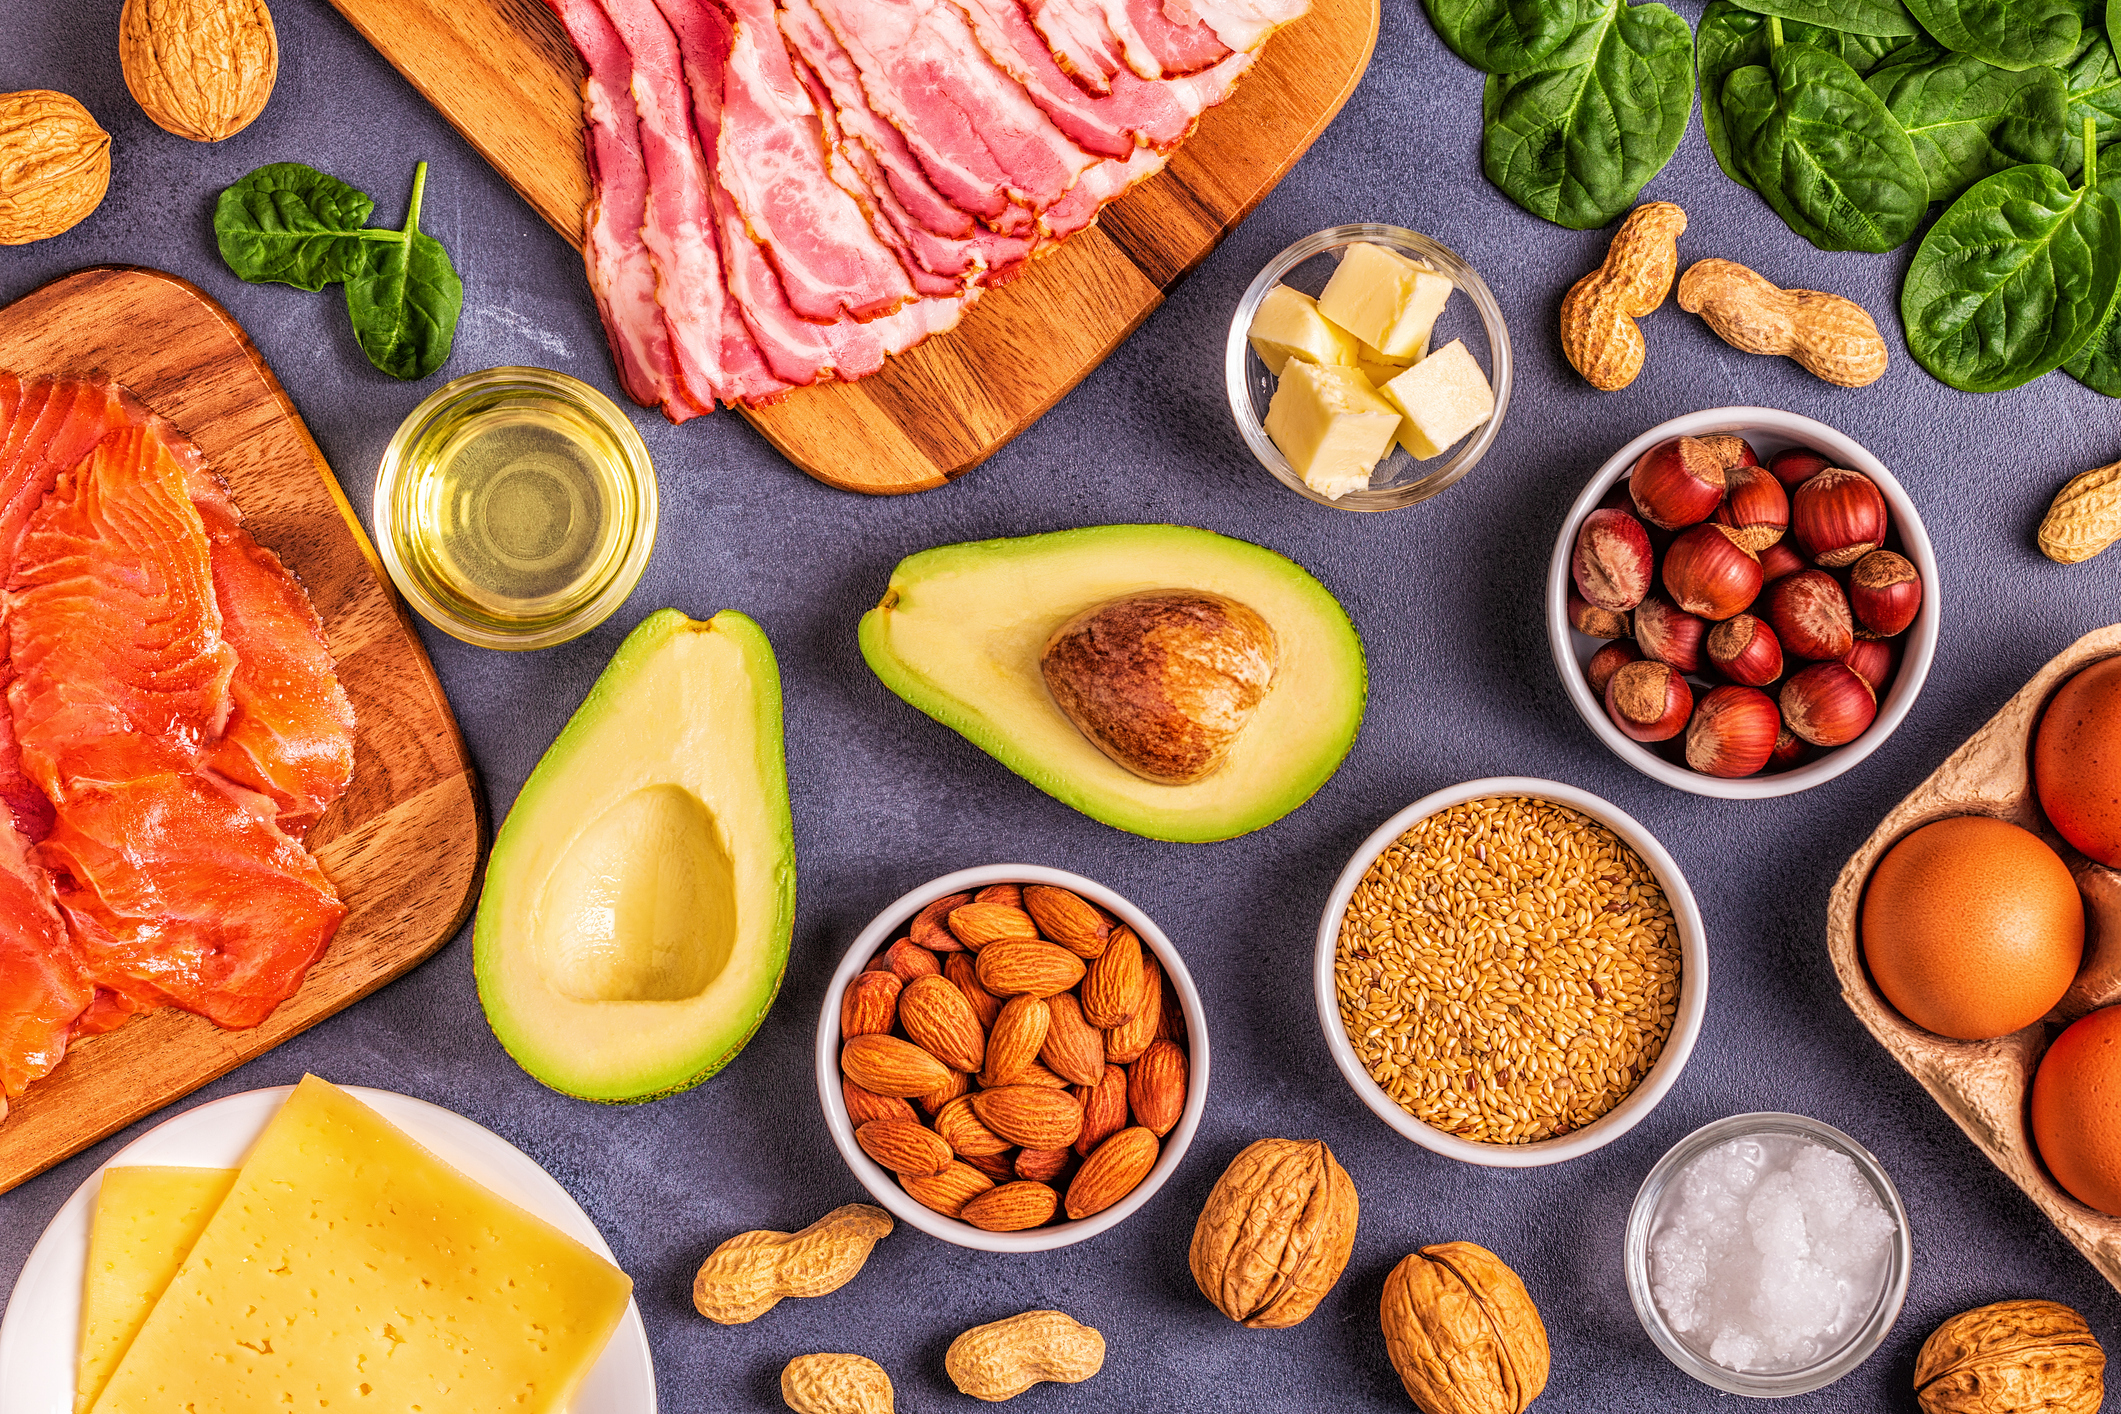 7 Keto Diet Misconceptions And Why You Should Give It A Try